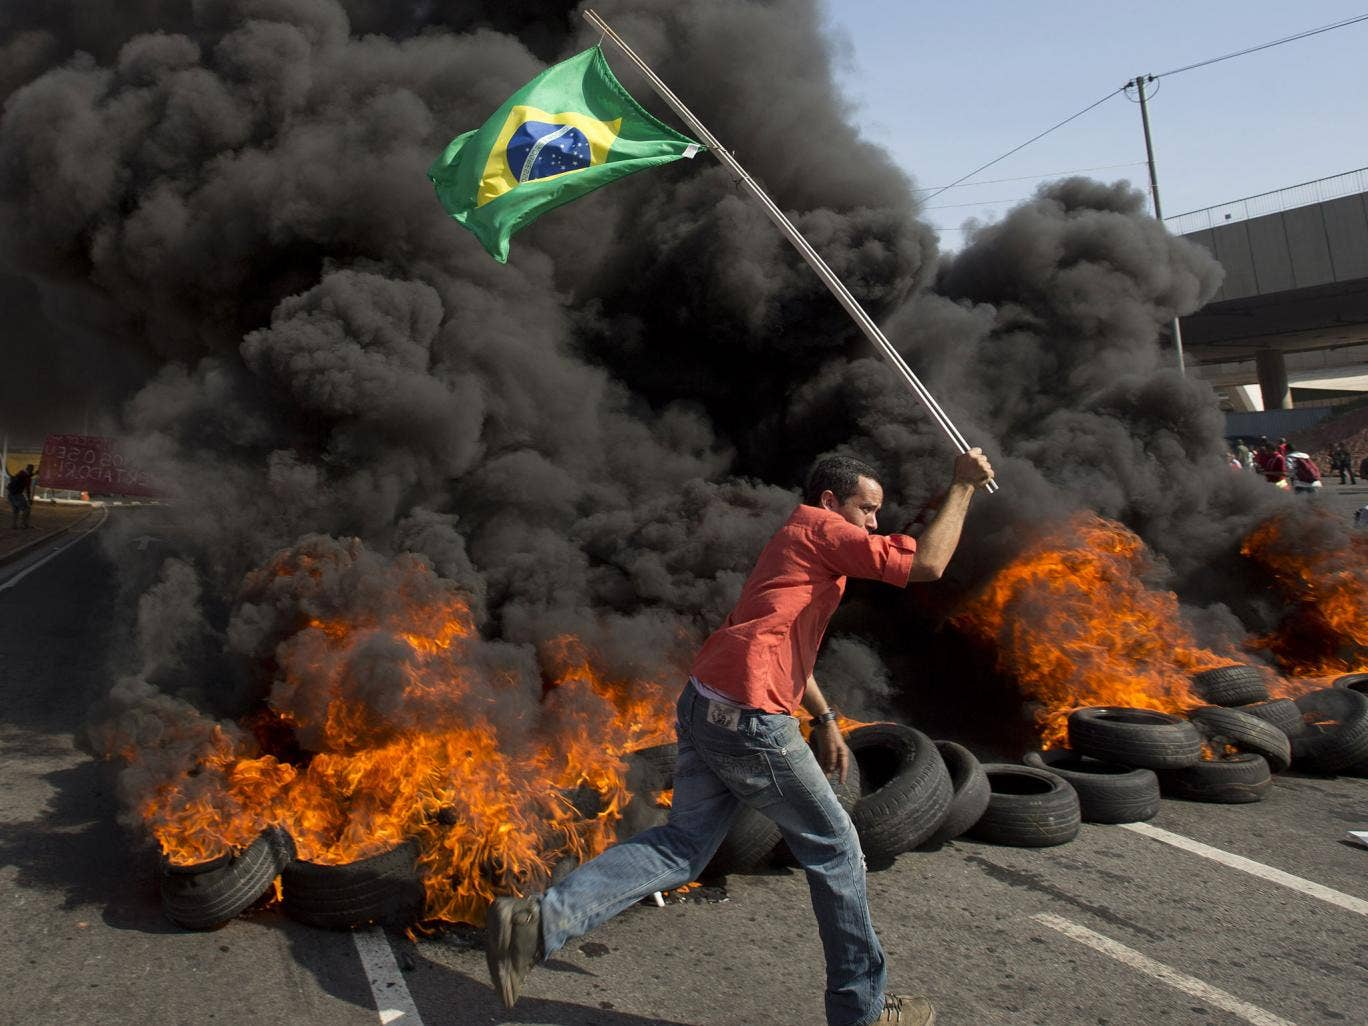 A member of the Homeless Workers Movement carries a Brazilian flag past burning tires during a protest against the money spent on the World Cup near Itaquerao stadium which will host the international soccer tournament's first match in Sao Paulo